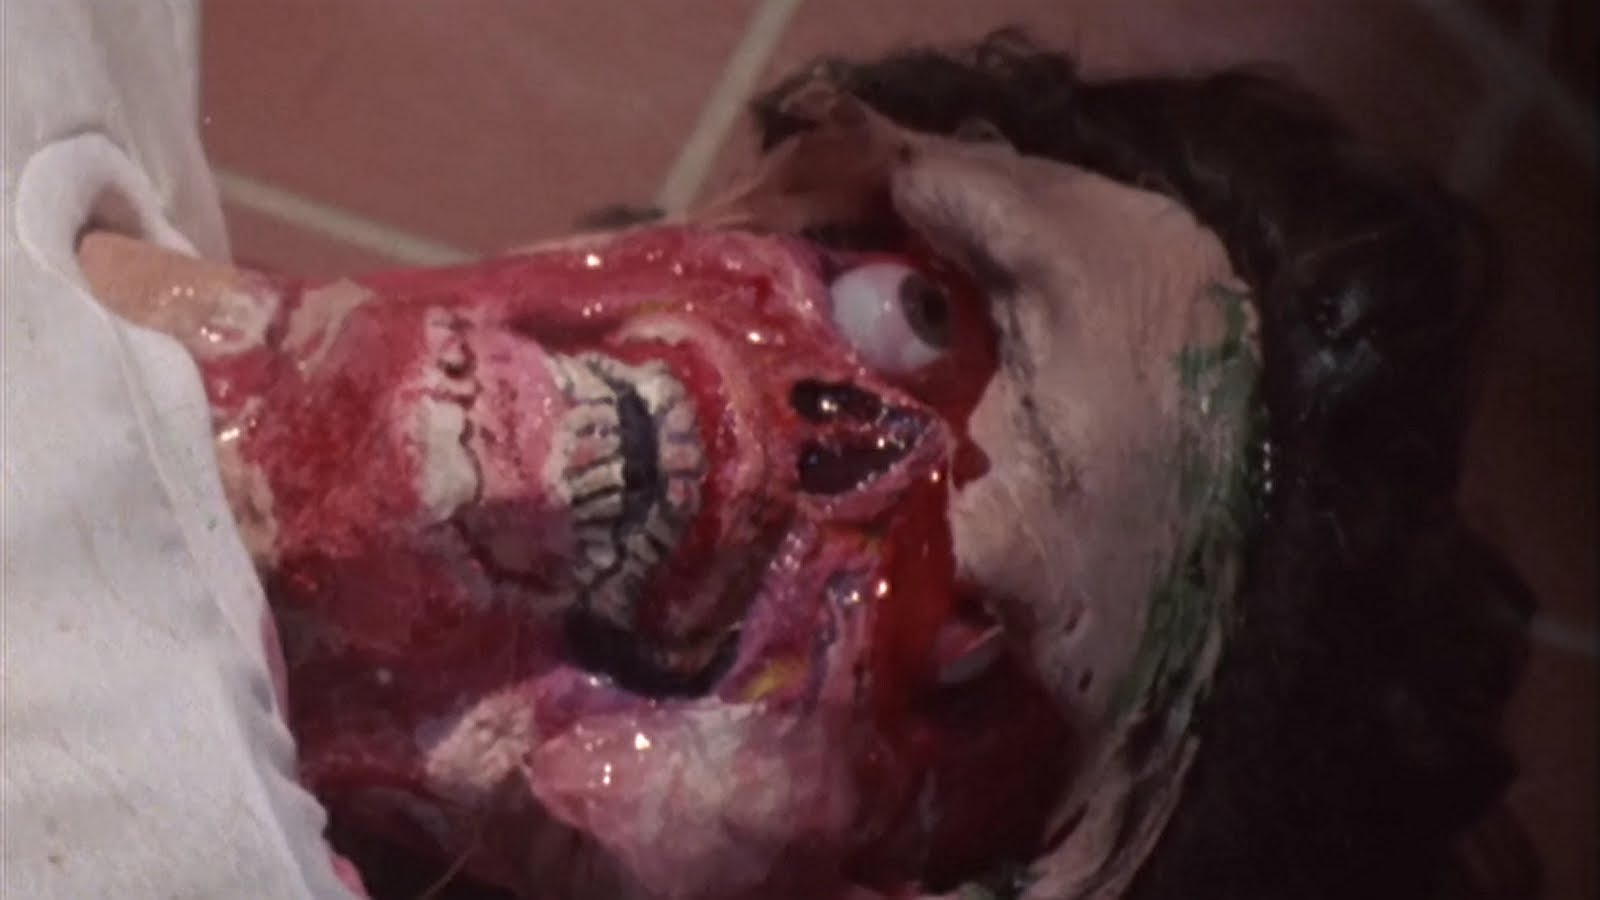 http://sinsofcinema.com/Images/Theres%20Nothing%20Out%20There/Theres%20Nothing%20Out%20There%20Troma%20DVD.jpg